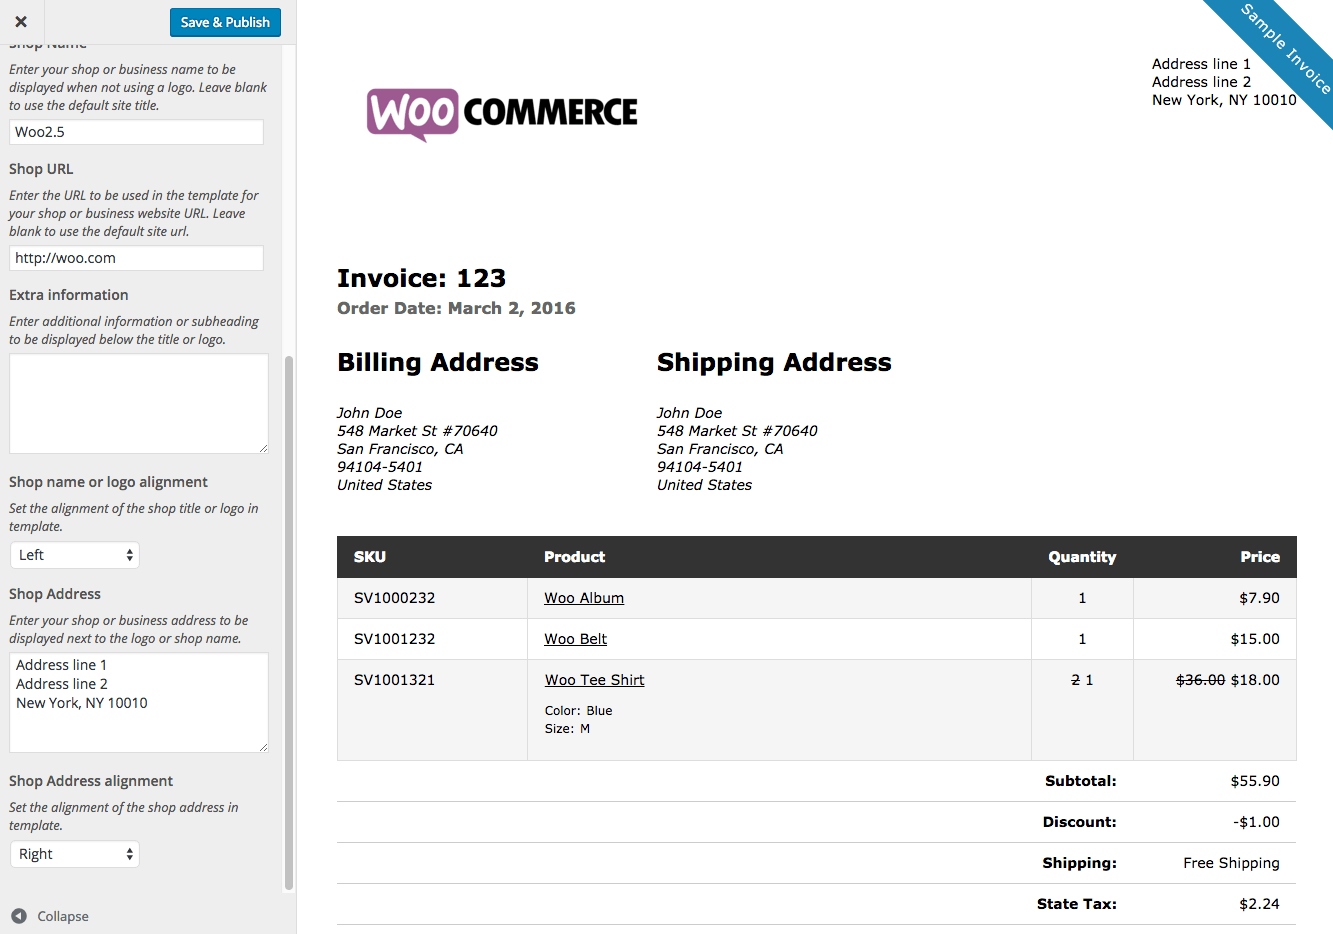 Ultrablogus  Mesmerizing Woocommerce Print Invoices Amp Packing Lists  Woocommerce Docs With Glamorous Woocommerce Print Invoices  Packing Lists Customizer With Captivating Define Commercial Invoice Also Credit Card Invoice Template In Addition Invoice Templae And Past Due Invoice Letter Sample As Well As Aging Invoice Additionally Proforma Invoice Format From Docswoocommercecom With Ultrablogus  Glamorous Woocommerce Print Invoices Amp Packing Lists  Woocommerce Docs With Captivating Woocommerce Print Invoices  Packing Lists Customizer And Mesmerizing Define Commercial Invoice Also Credit Card Invoice Template In Addition Invoice Templae From Docswoocommercecom